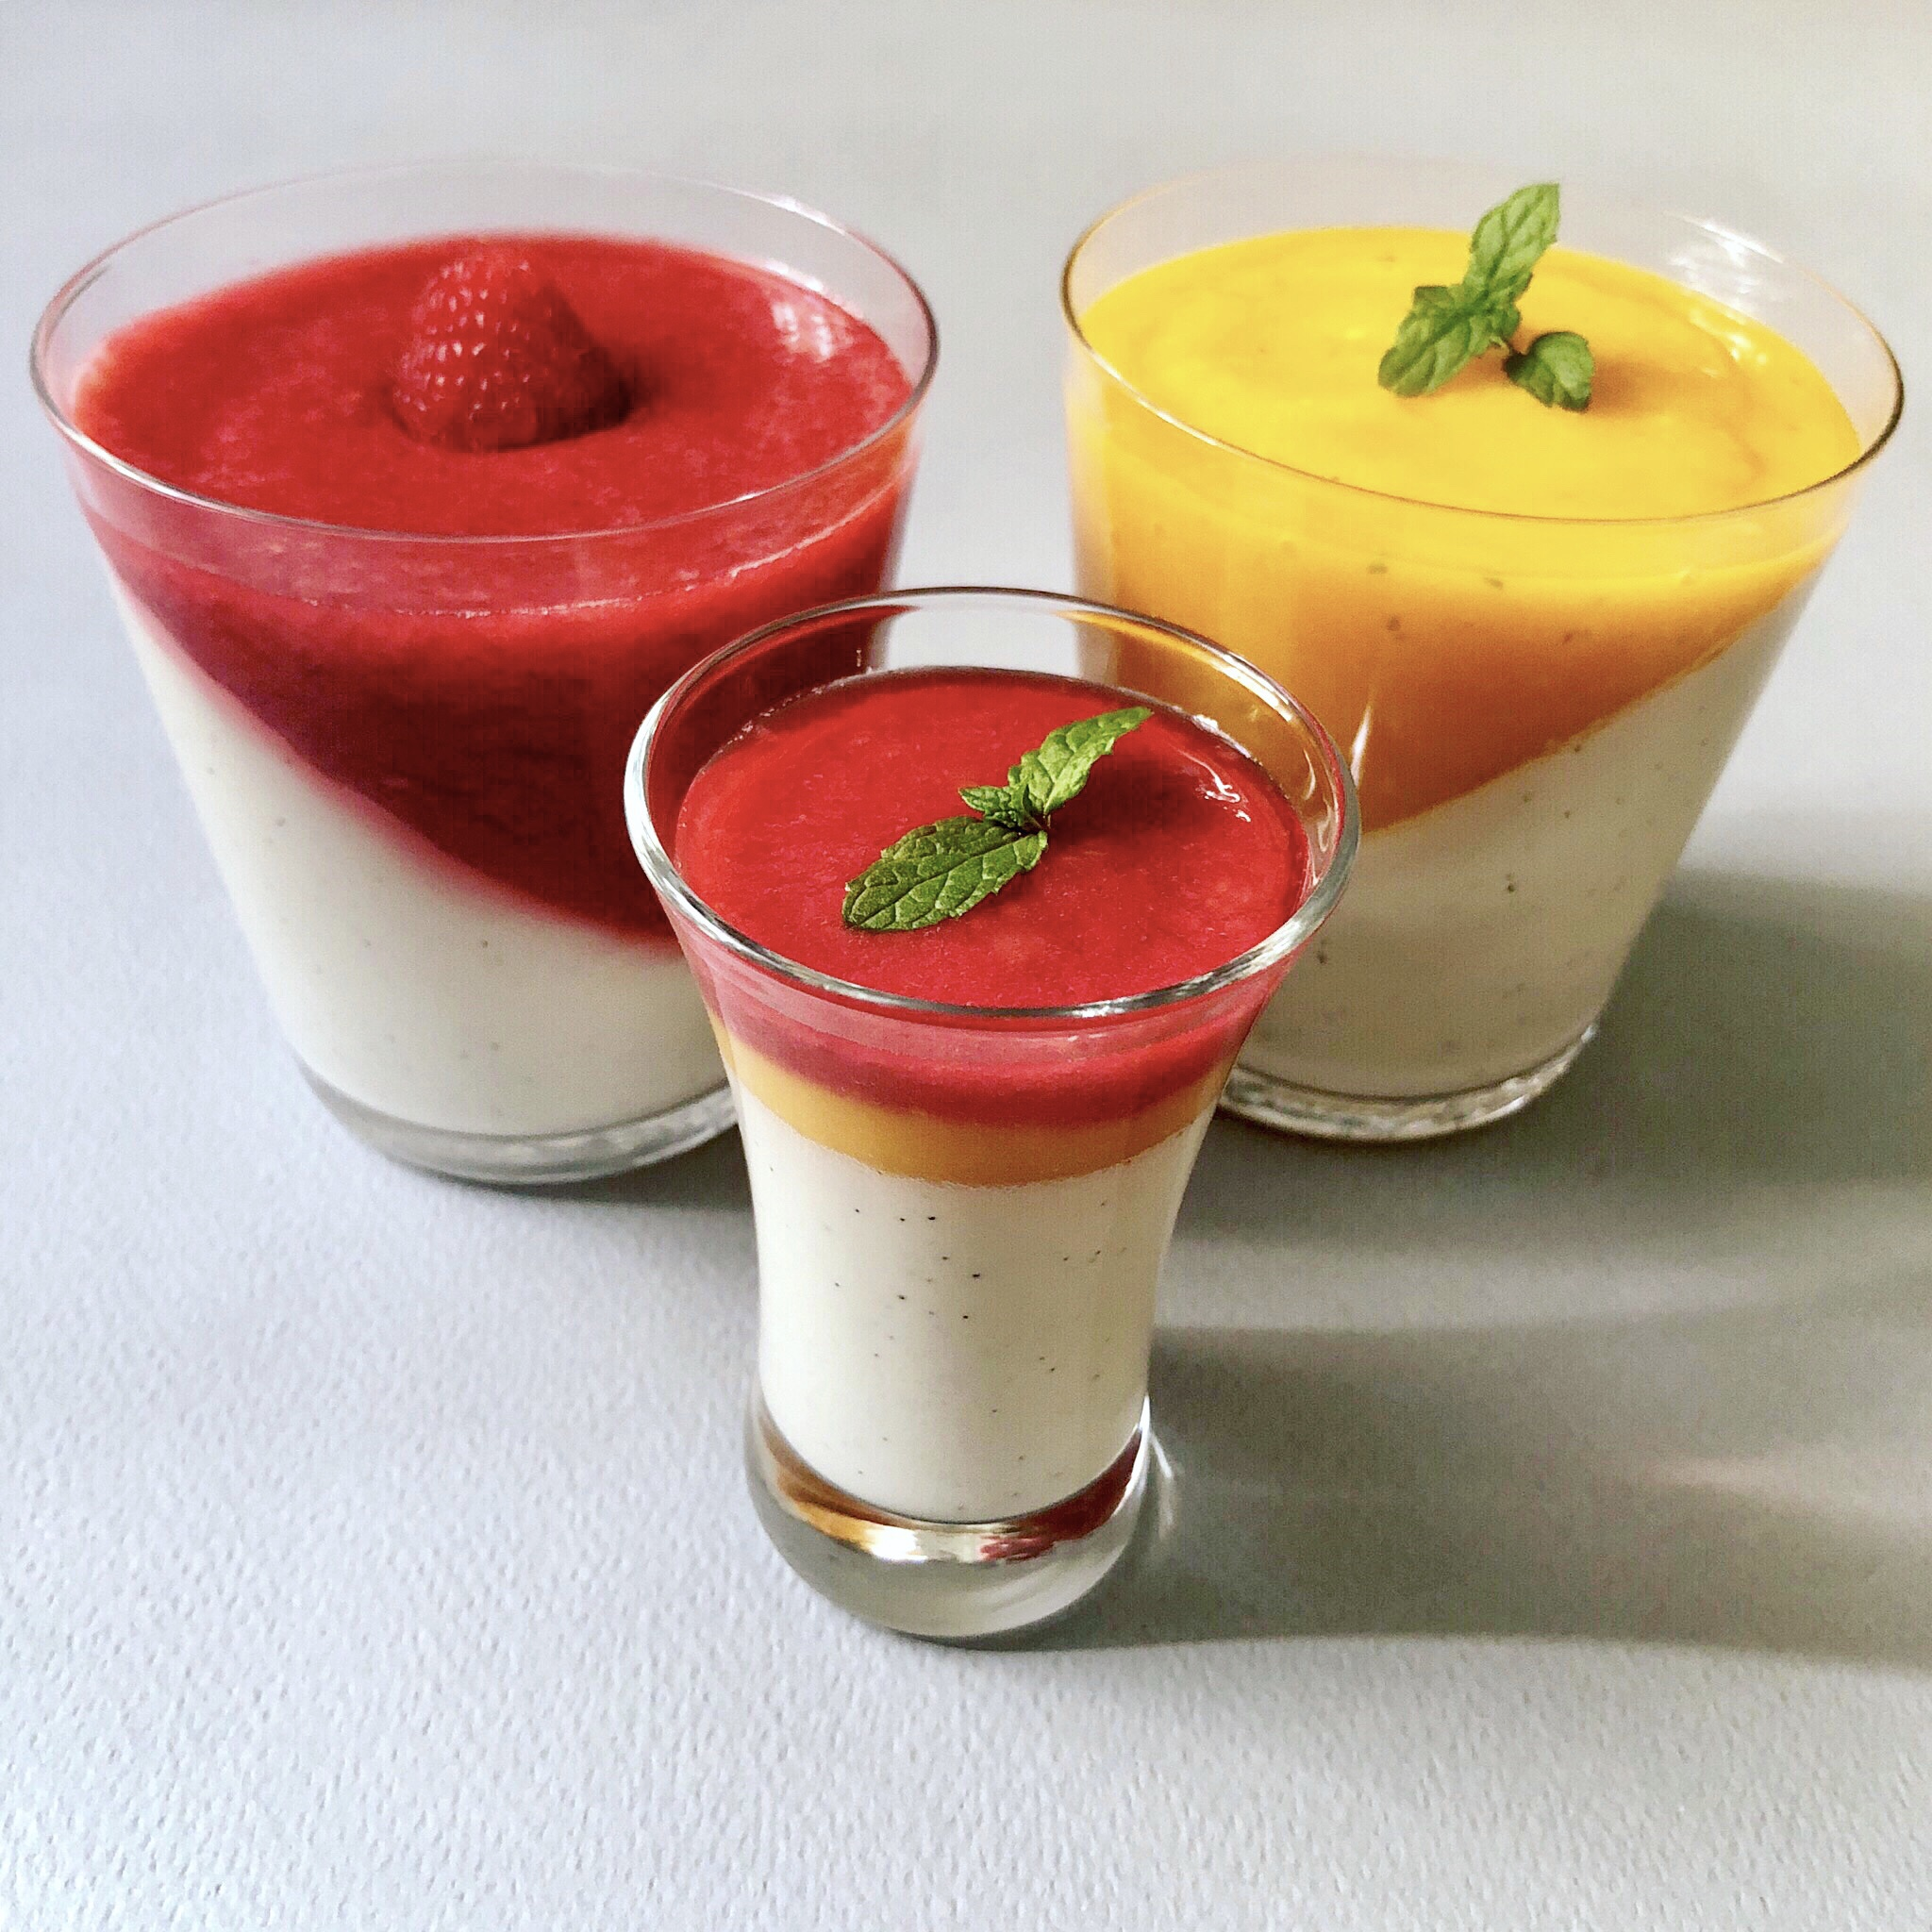 IMG 3499 - Pannacotta, mango or raspberry  ... Or both!